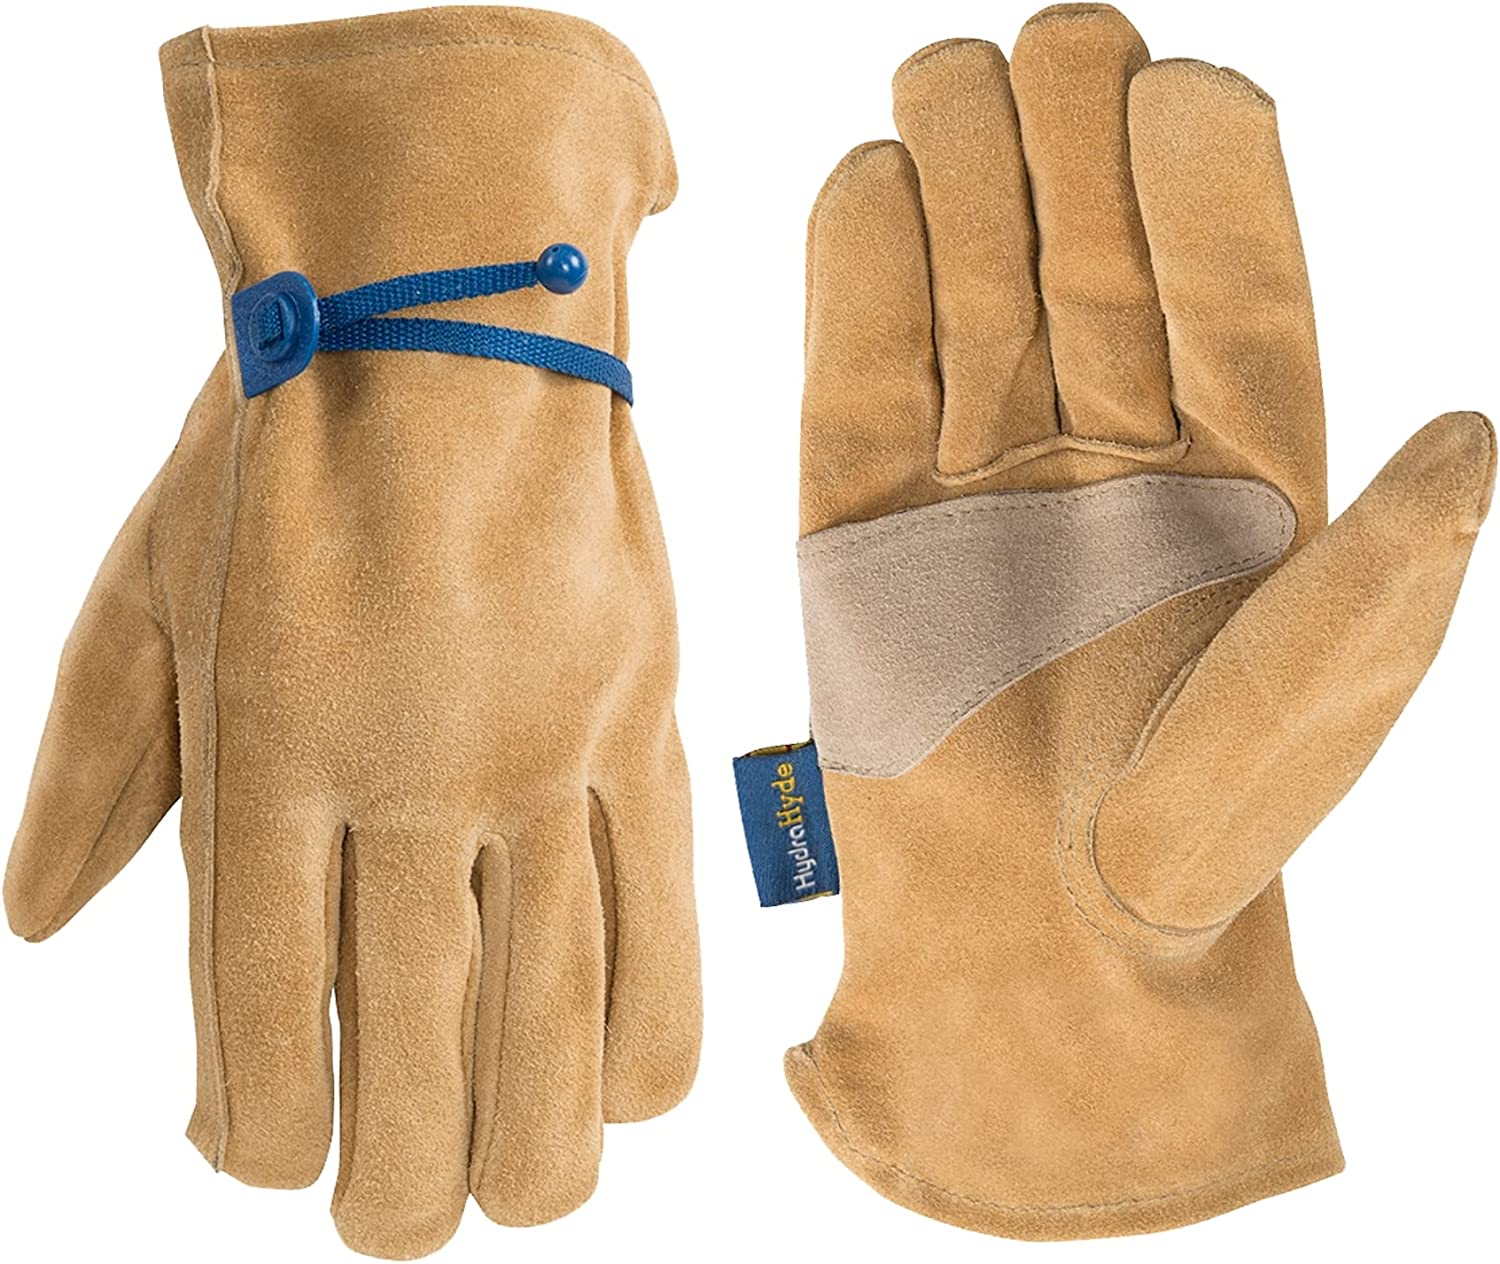 Men's Genuine Split Leather Work Gloves M Adjustable Baltimore Mall Wrist Colorado Springs Mall with